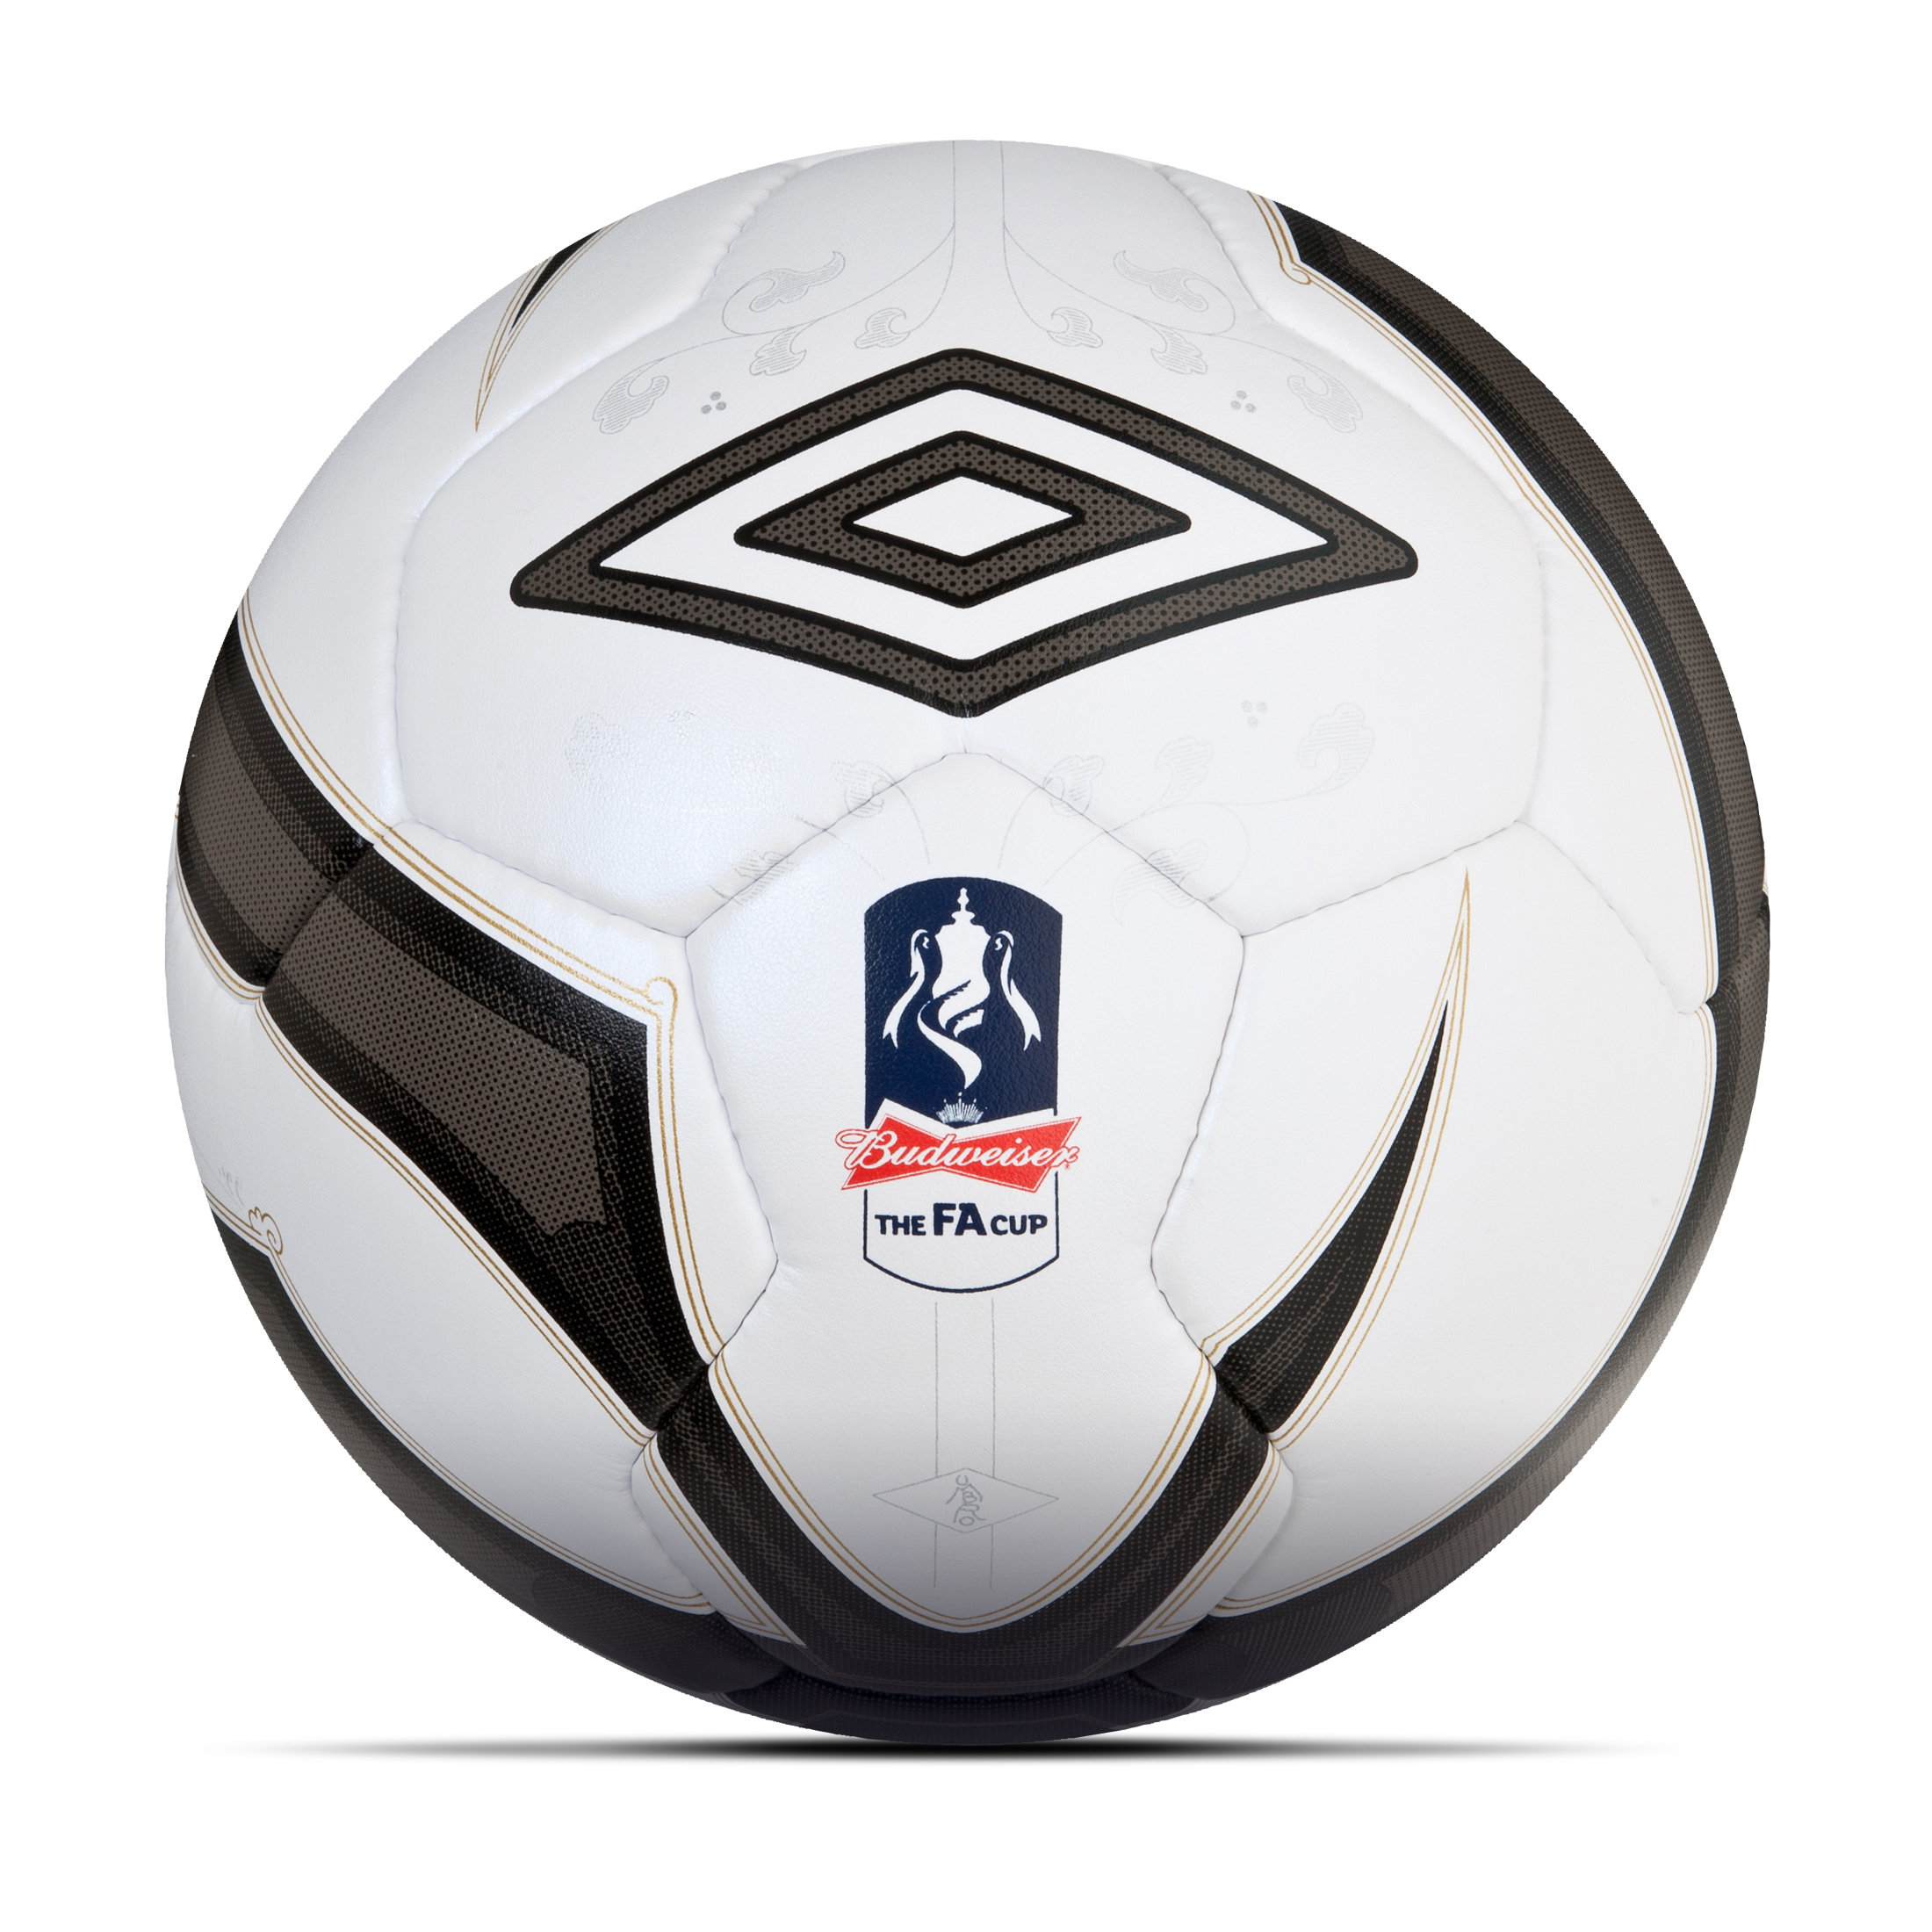 Umbro Neo Pro 2 FA Cup 2012/13 Official Match Ball - White/Black/Gold